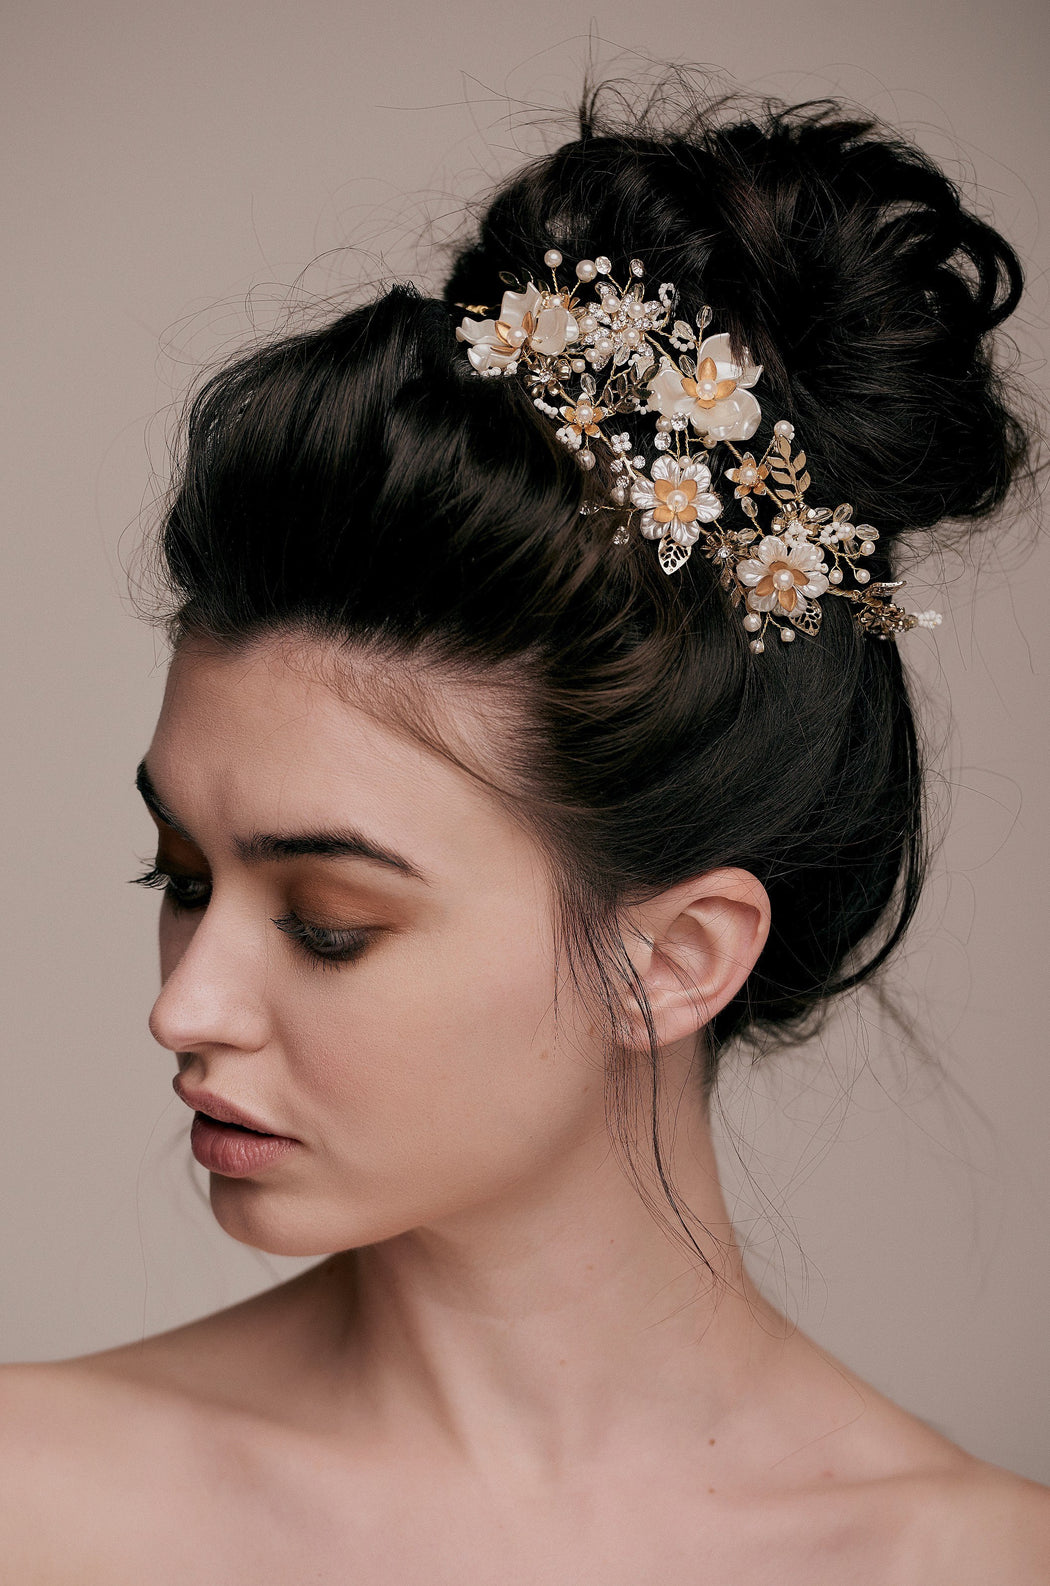 Mariah Luxe Floral Embellished Hair Vine taylor and rose wedding hair bride hair style bridal hairdo